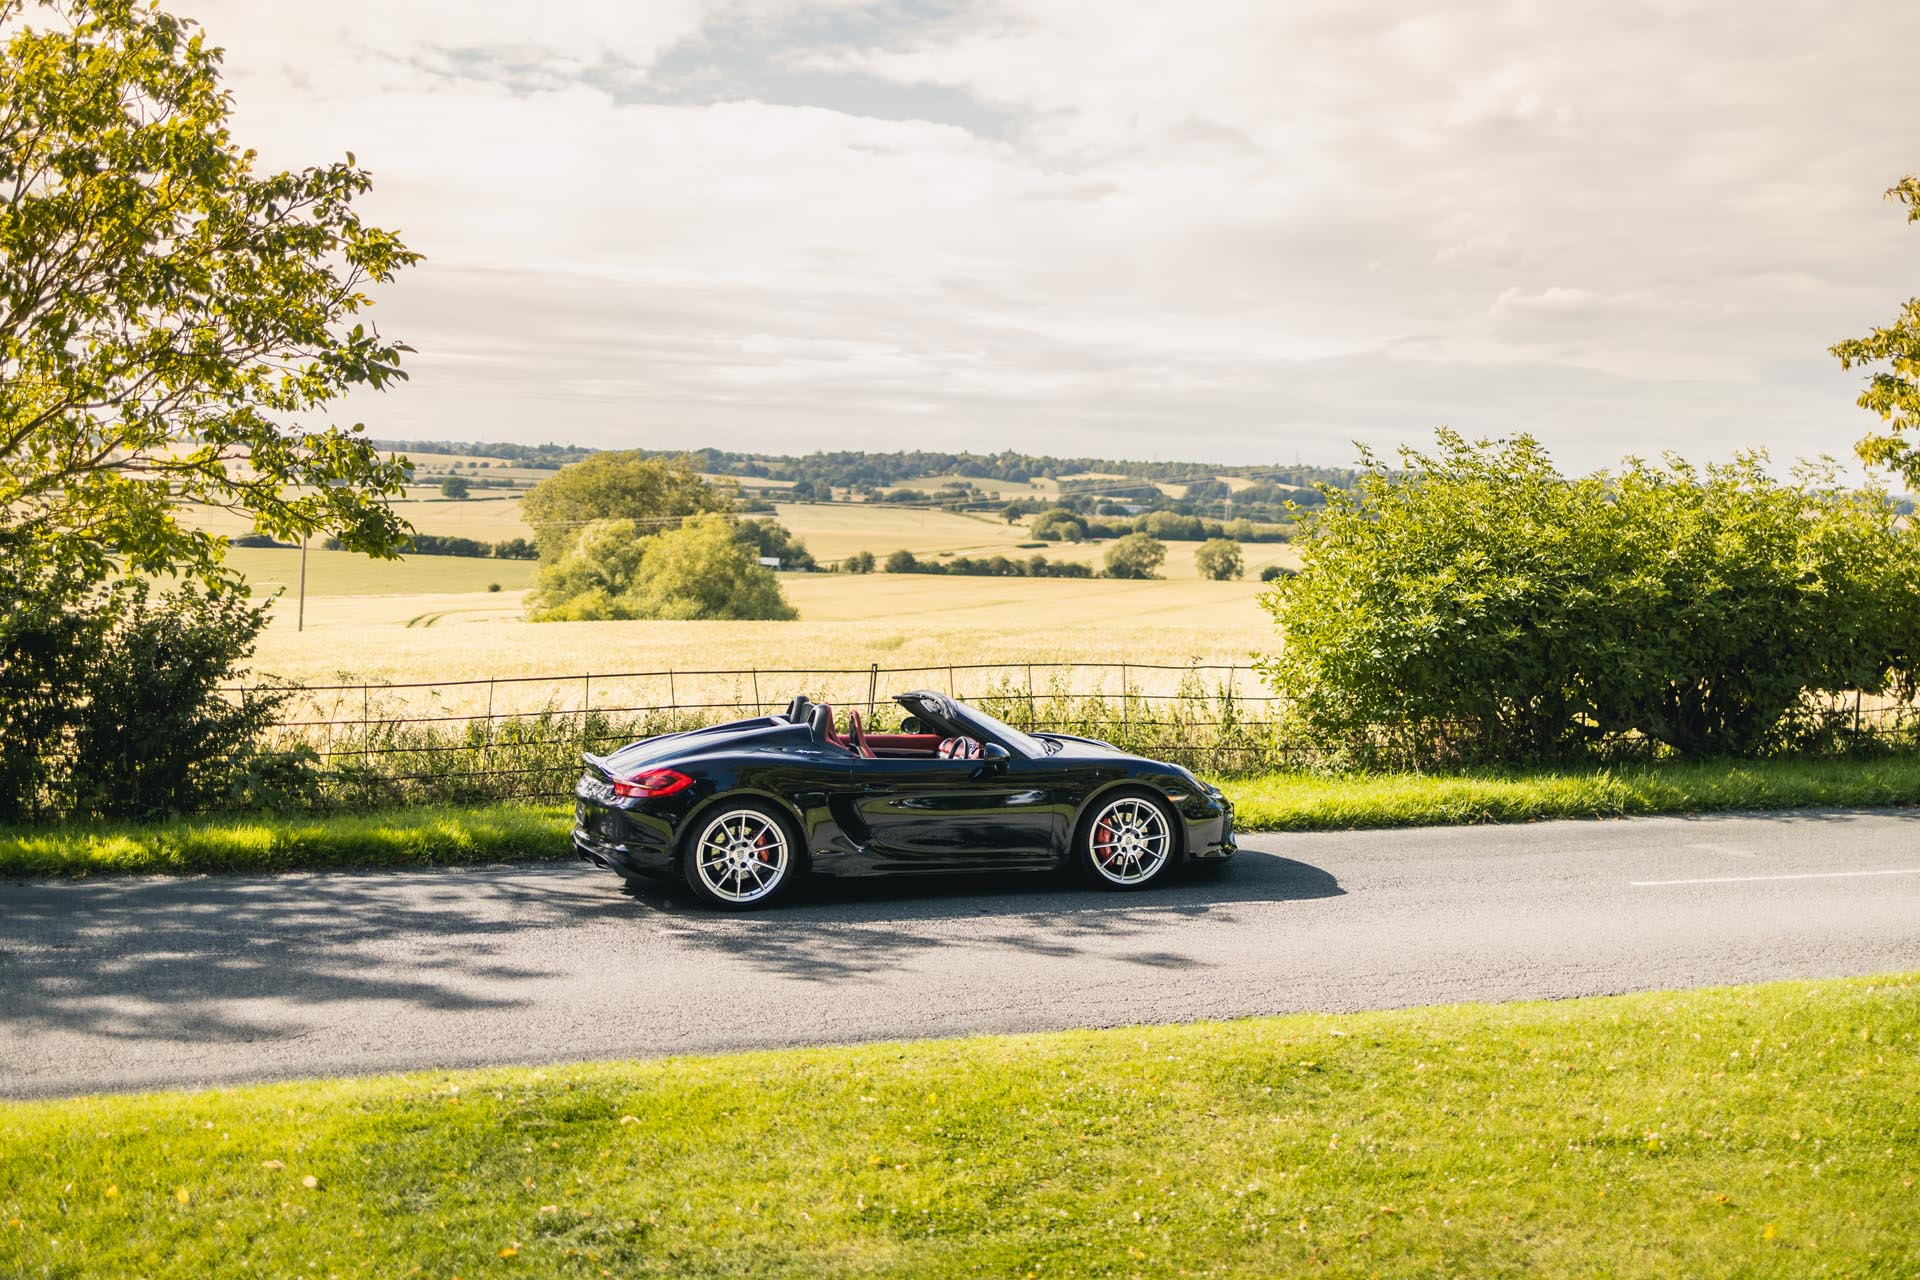 981-boxster-spyder-countryside